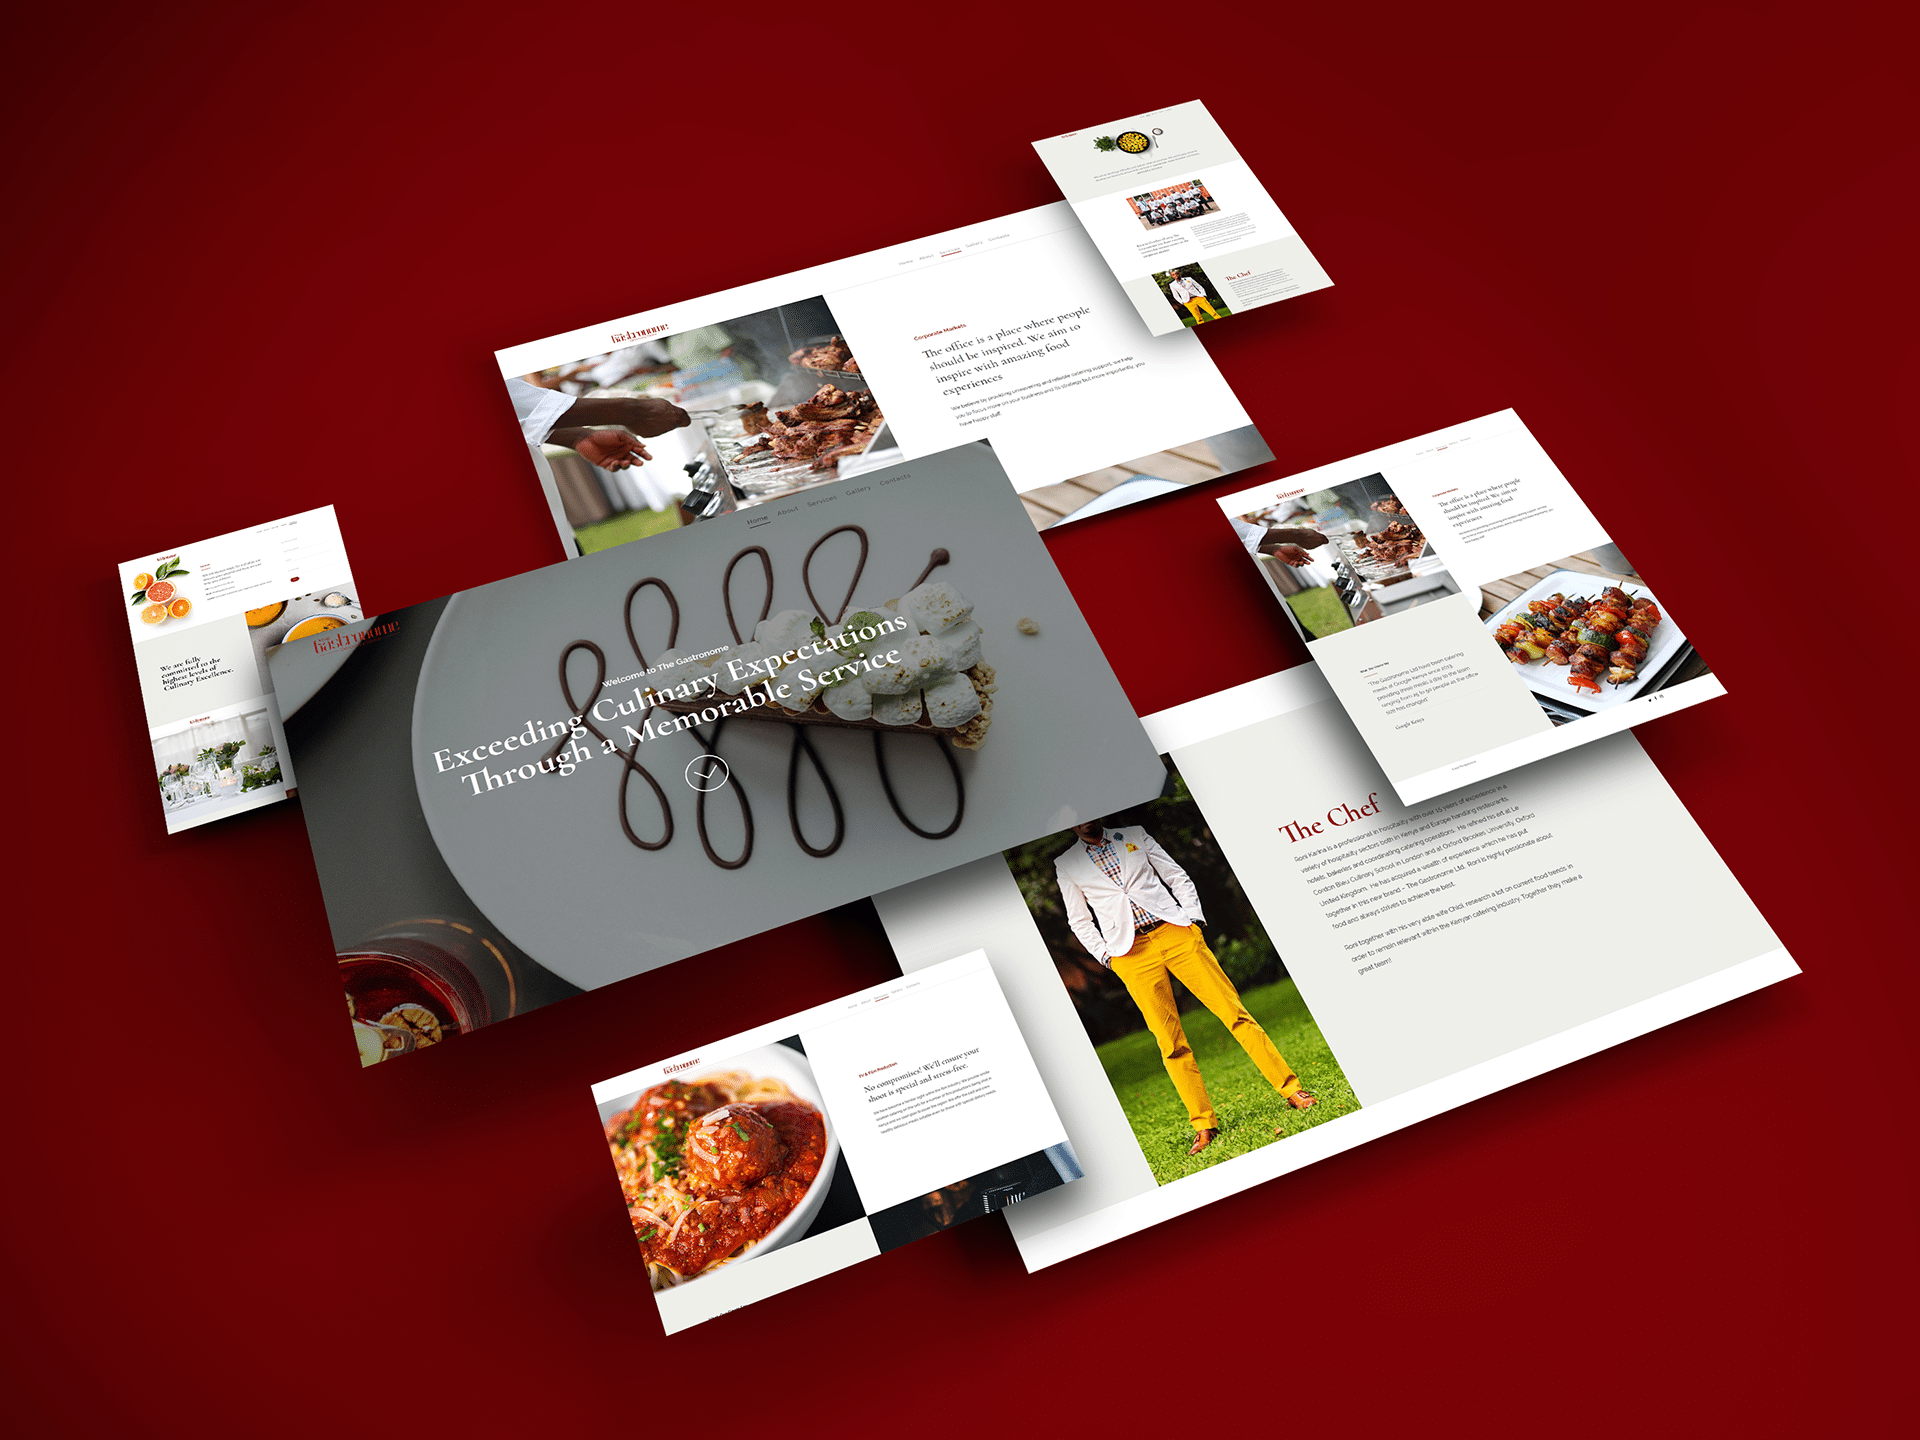 The Gastronome Website Deigned by Jabari Creative Studios